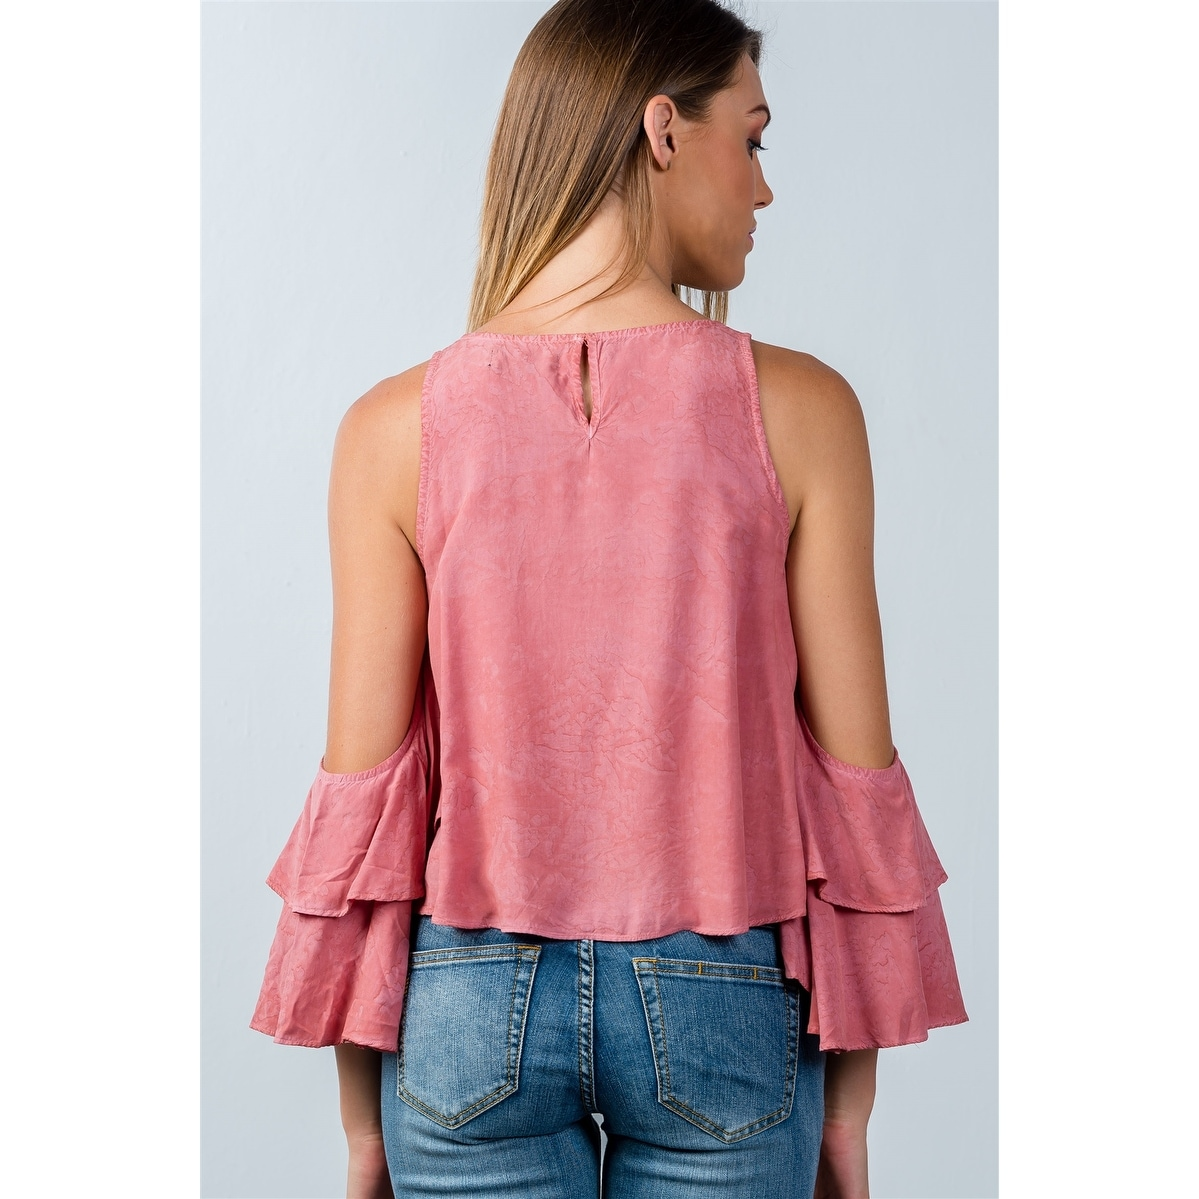 b6d1e8d7f995a5 Shop Ladies Fashion Back Keyhole Open-Shoulder Batwing Top - Size - L -  Free Shipping On Orders Over  45 - Overstock - 23163884